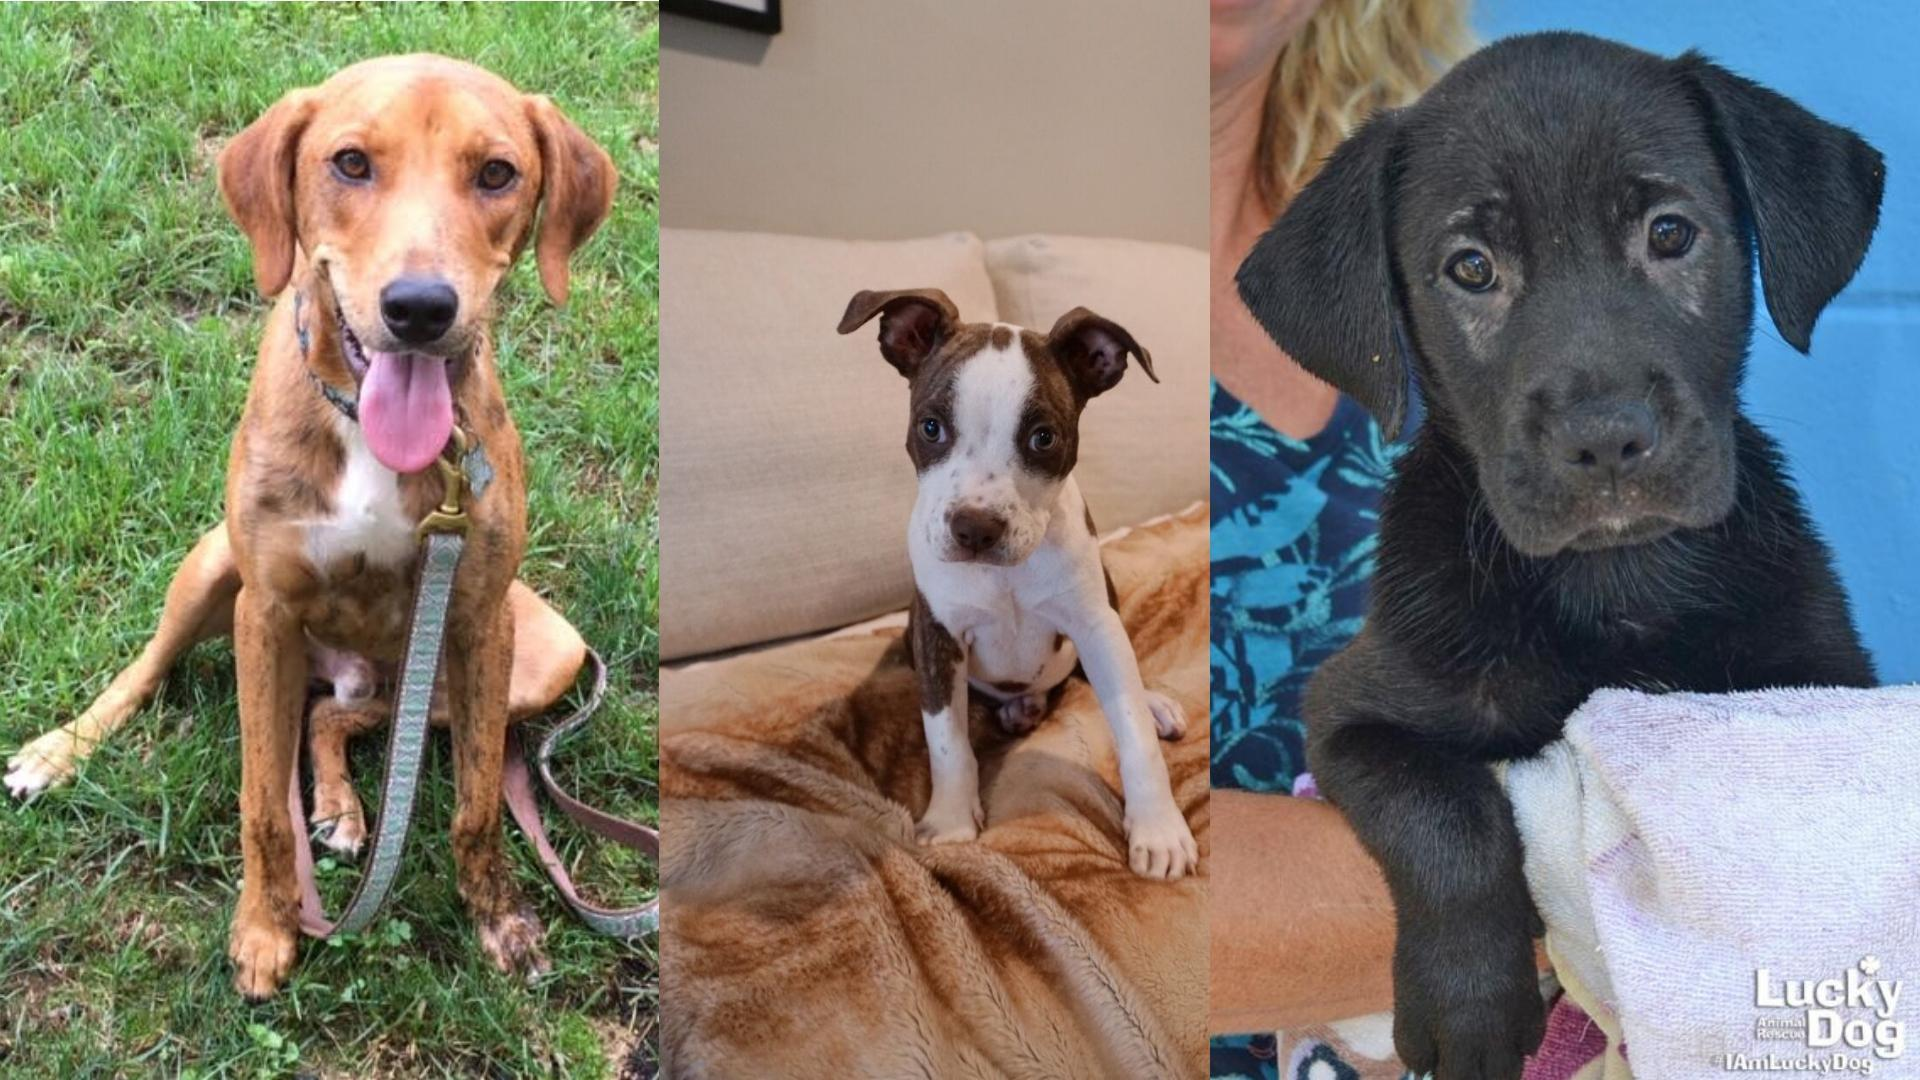 The following animals were all rescued from areas affected by Hurricane Florence, and are in temporary foster homes in the DMV area. They will all be at adoption events this weekend, but if they aren't adopted by Sunday, they will need new foster home placement. If you can help with fostering, please contact Lucky Dog Animal Rescue:{ } fostering@luckydoganimalrescue.org (Image: Courtesy Lucky Dog Animal Rescue){ }